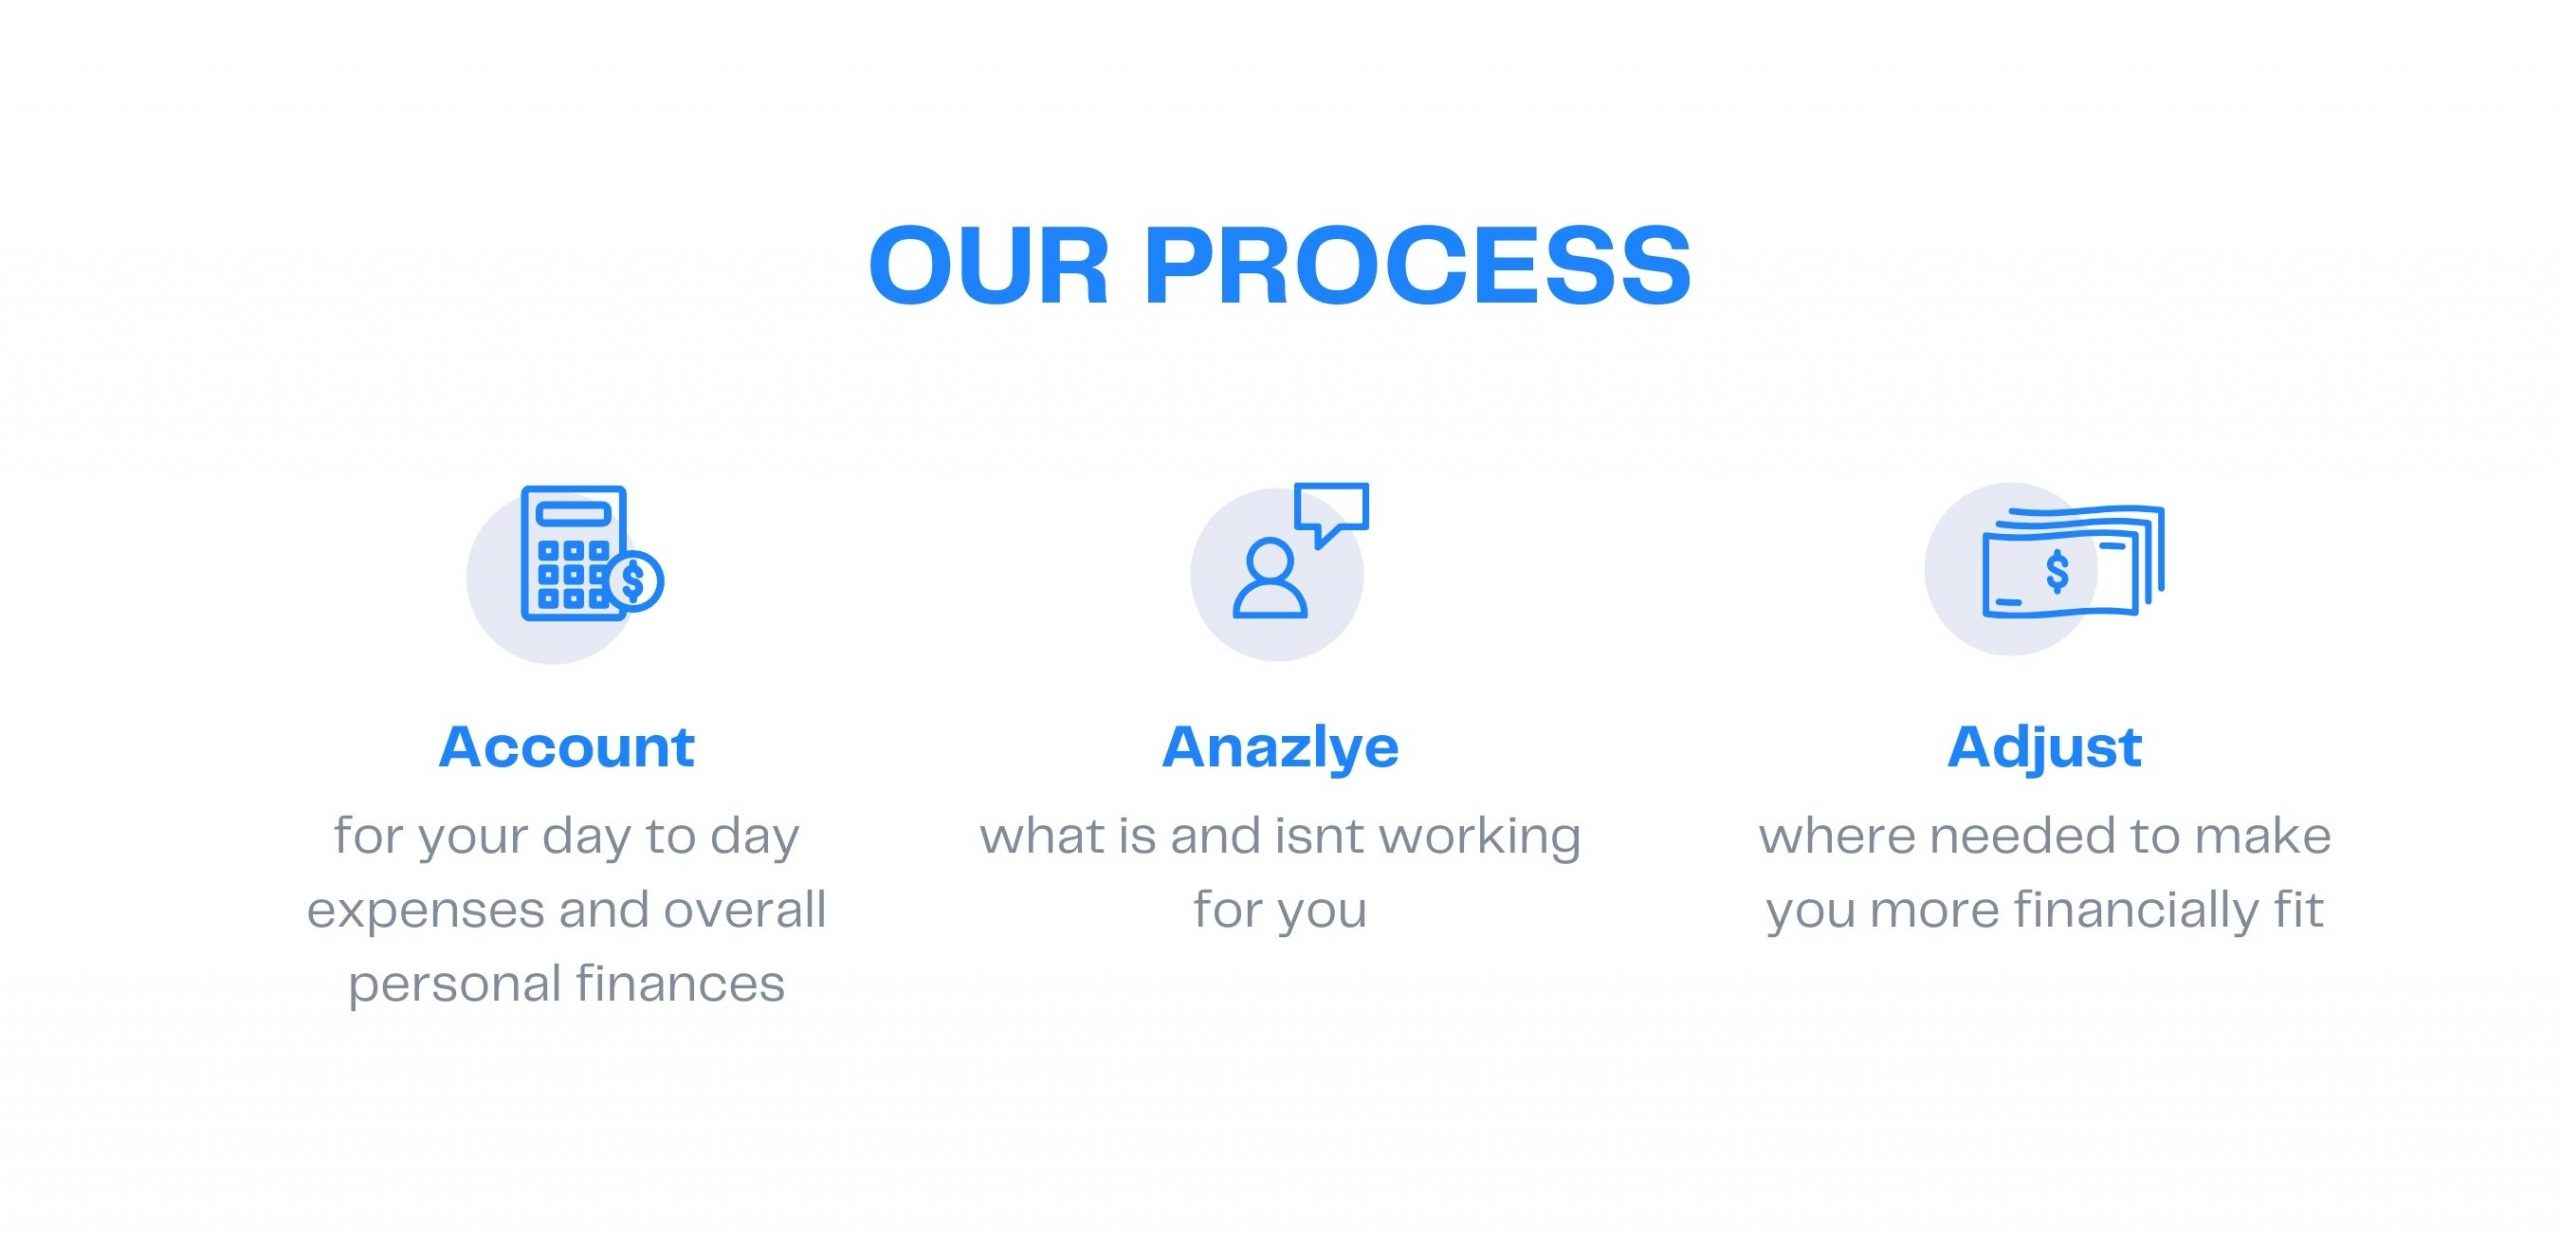 Our process: account, analyze and adjust